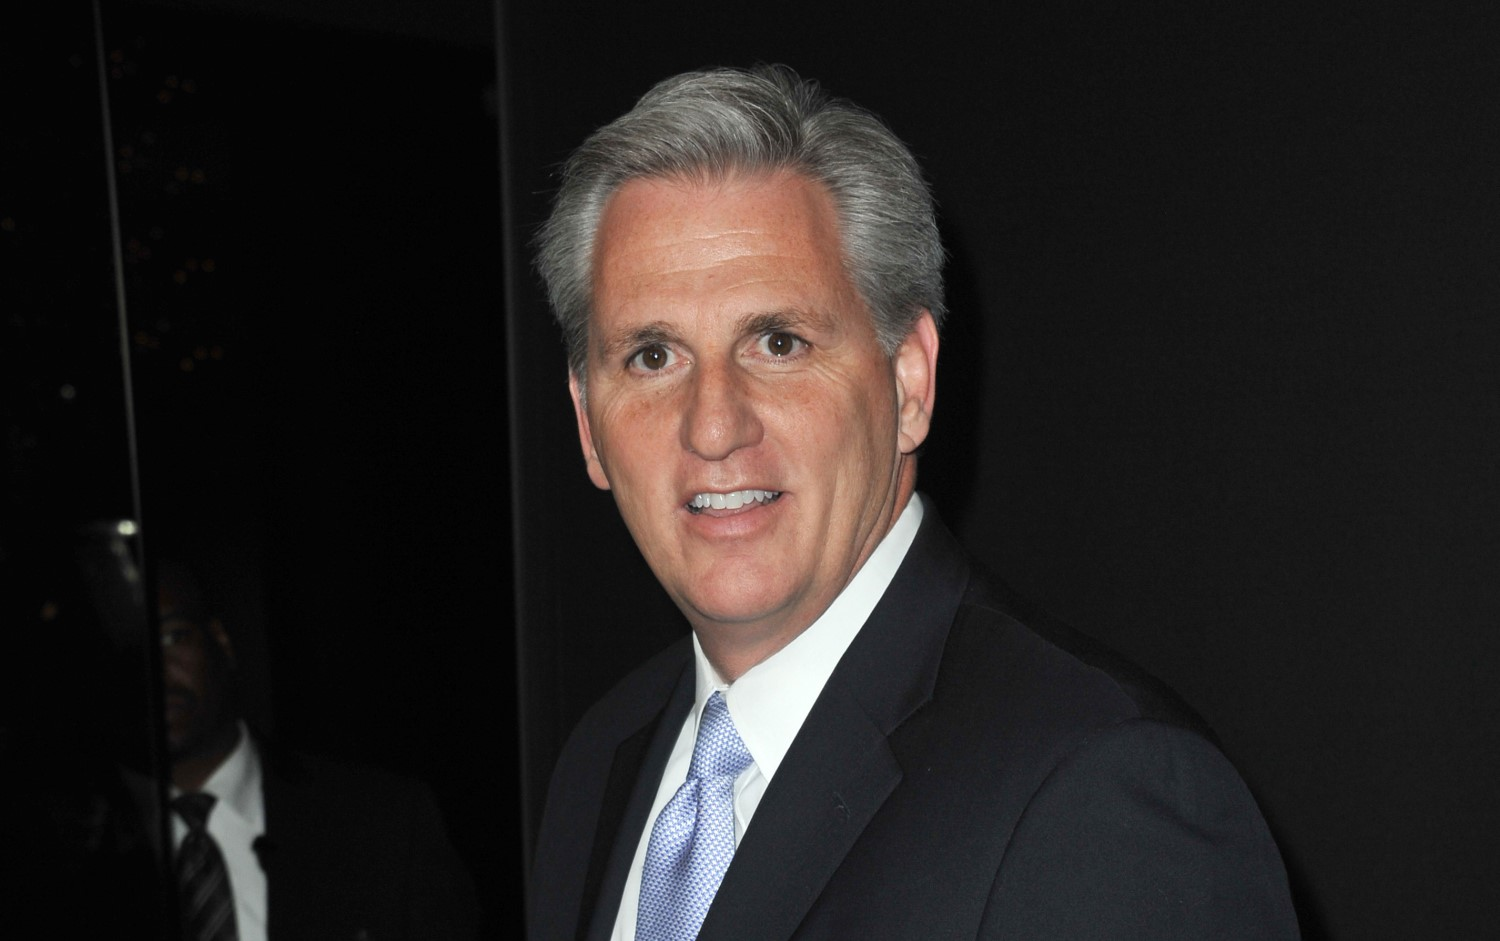 Republican Leader McCarthy Proposes Blockchain Transparency in Government